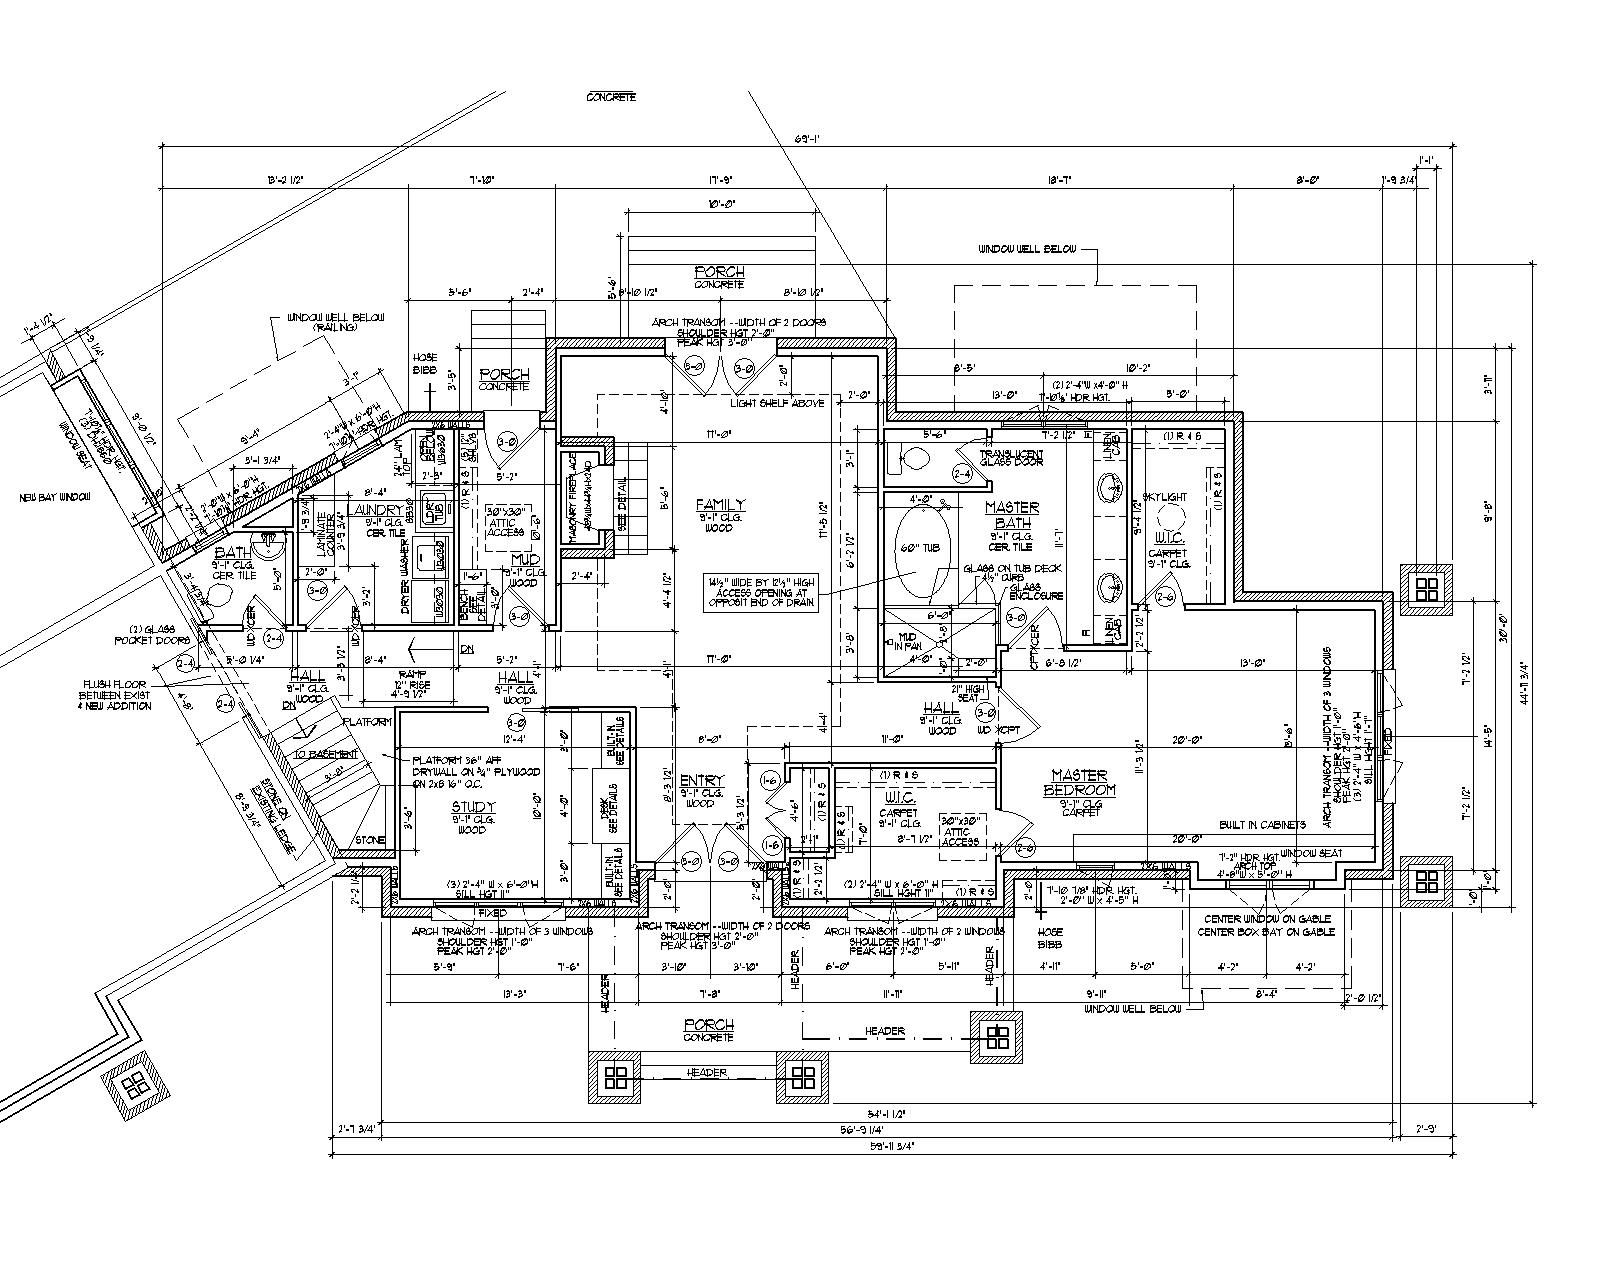 2d autocad house plans residential building drawings cad House cad drawings